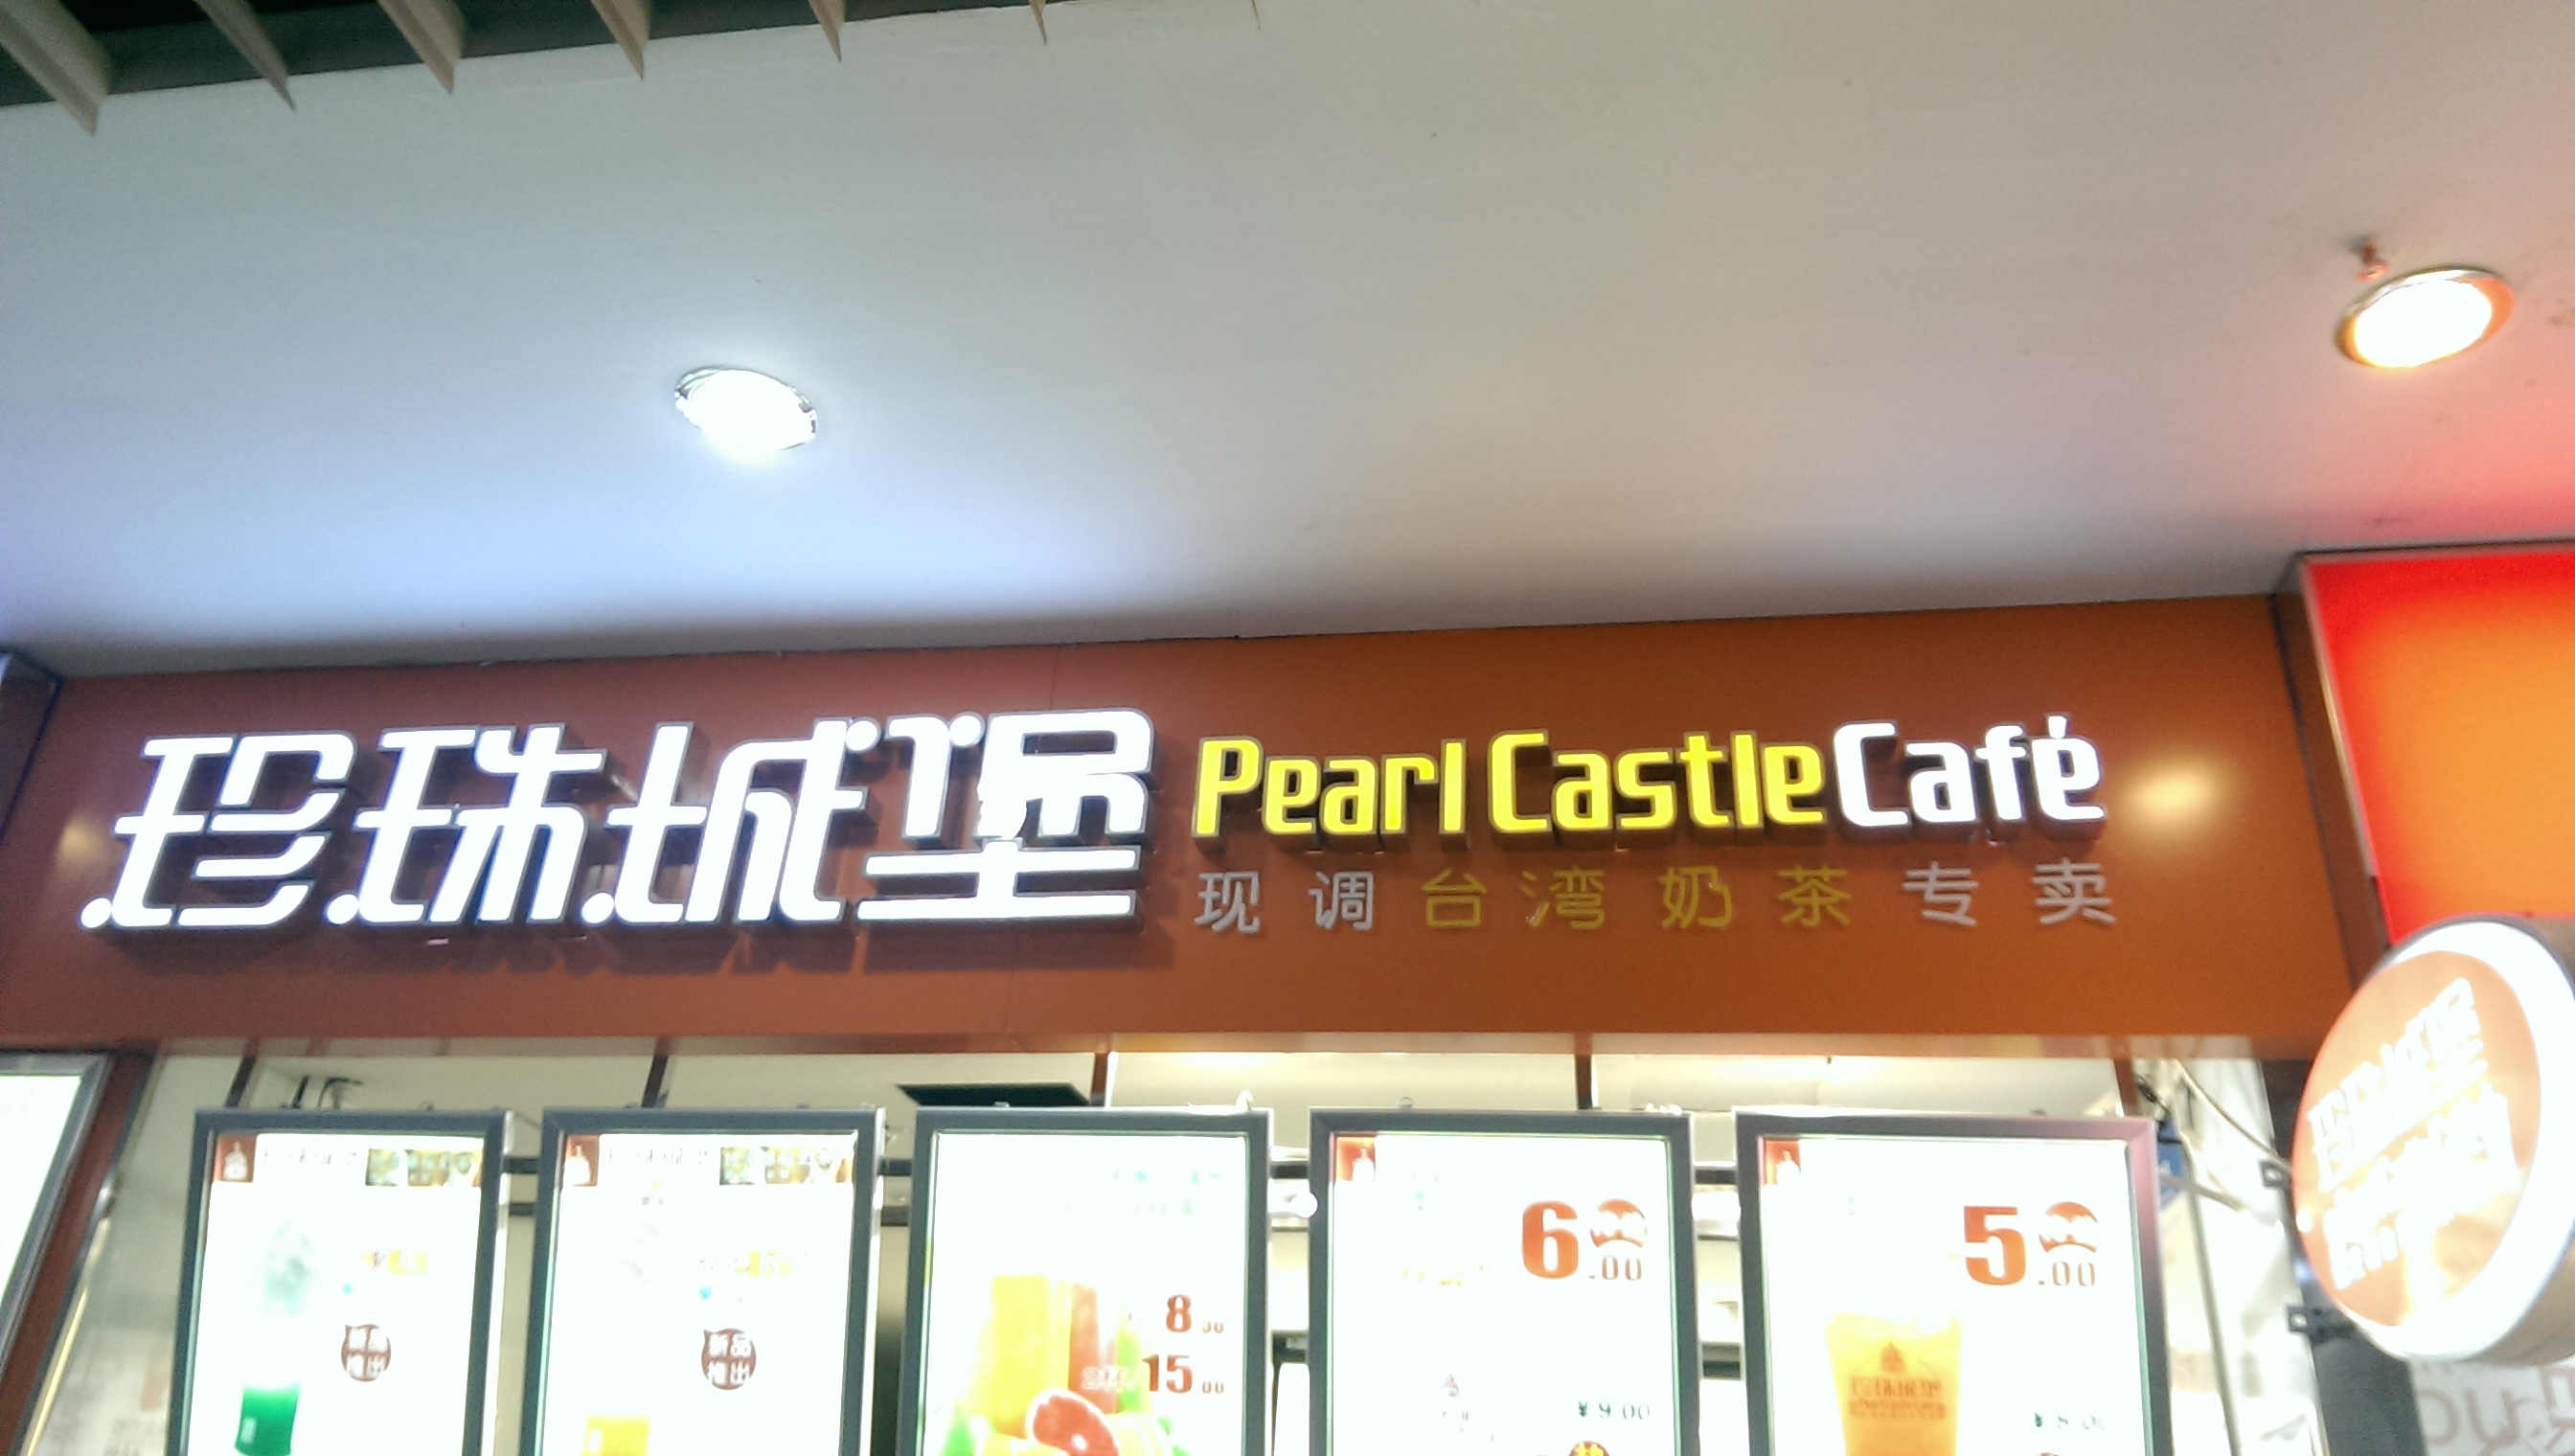 [Pearl Castle Cafe]